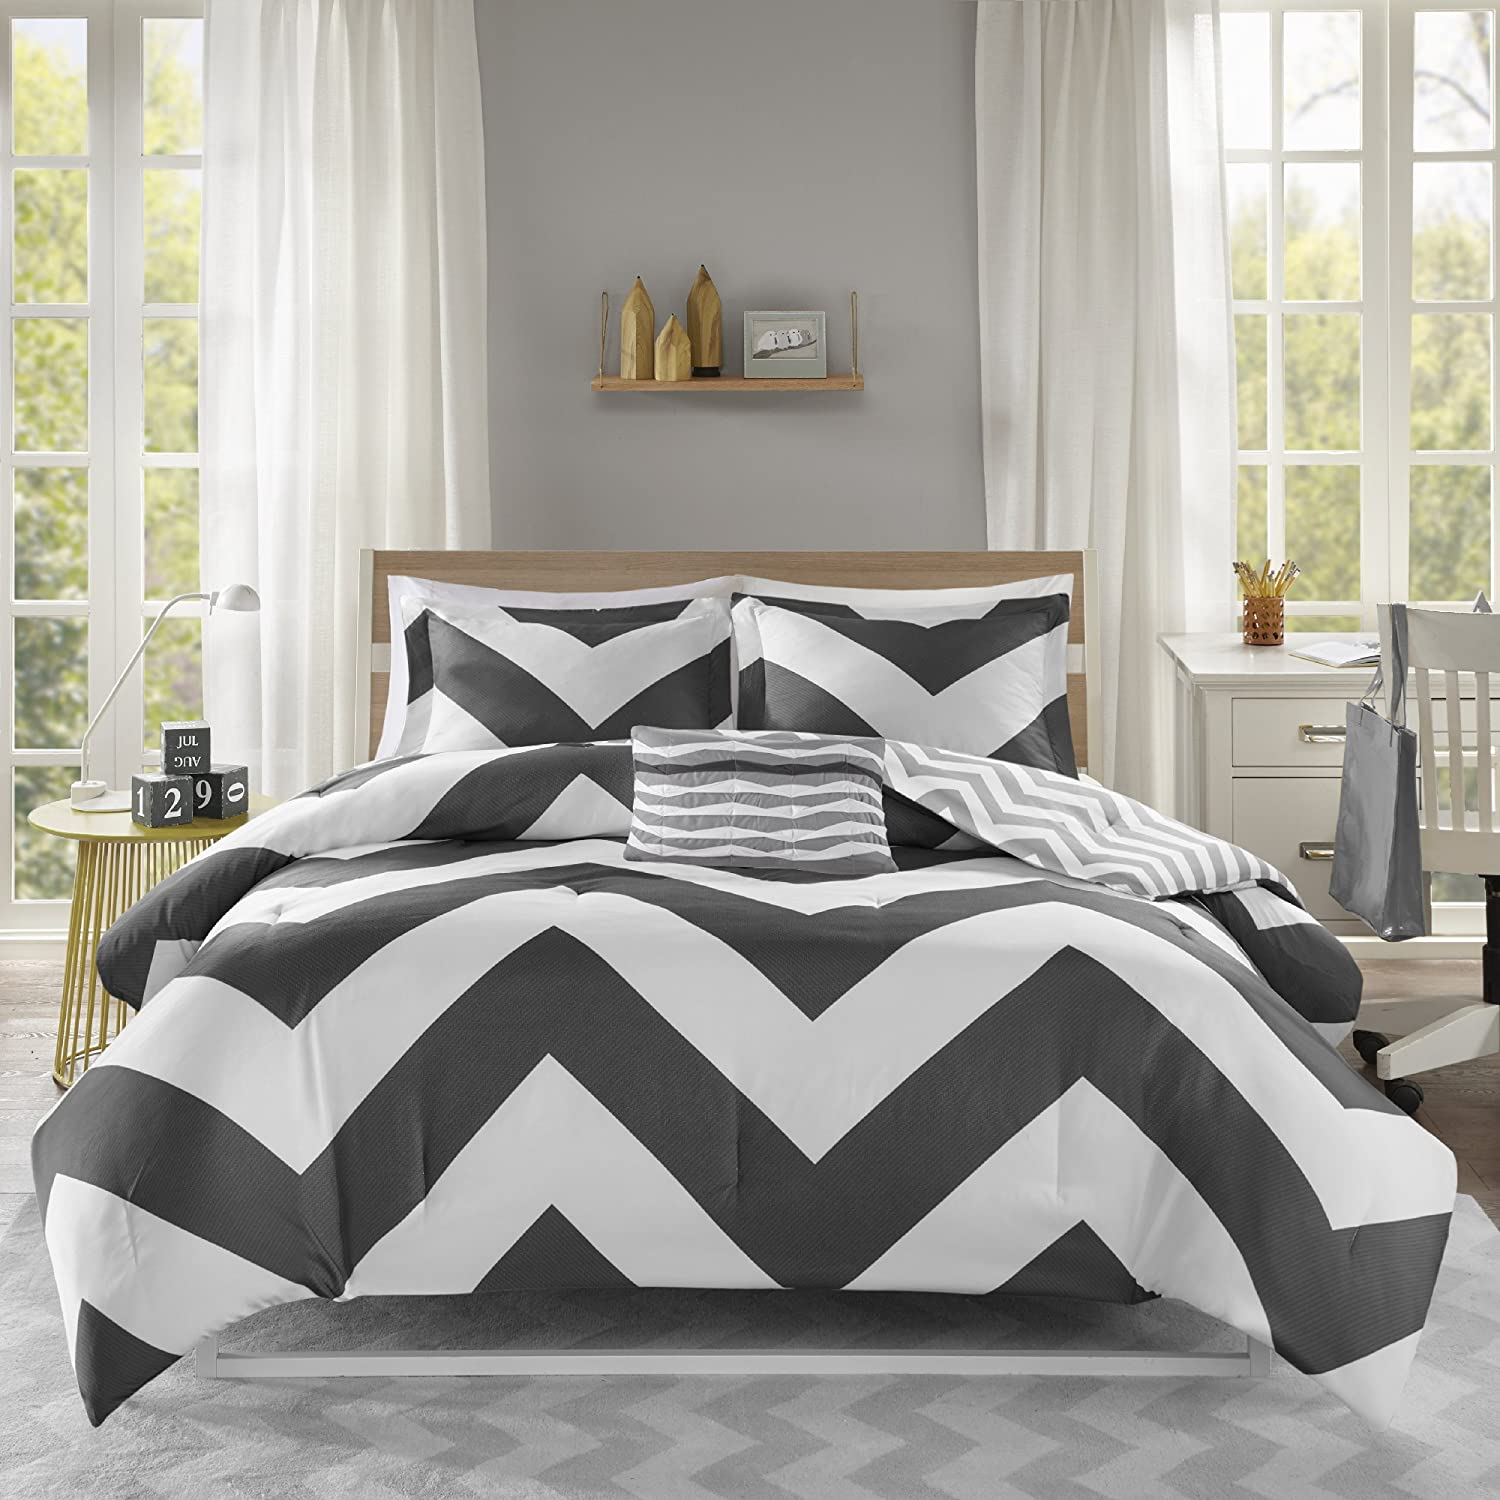 Mi Zone Libra Comforter Set Full/Queen Bedding Sets - Black , Chevron – 4 Piece Teen Bed Set – Ultra Soft Microfiber Bed Comforter